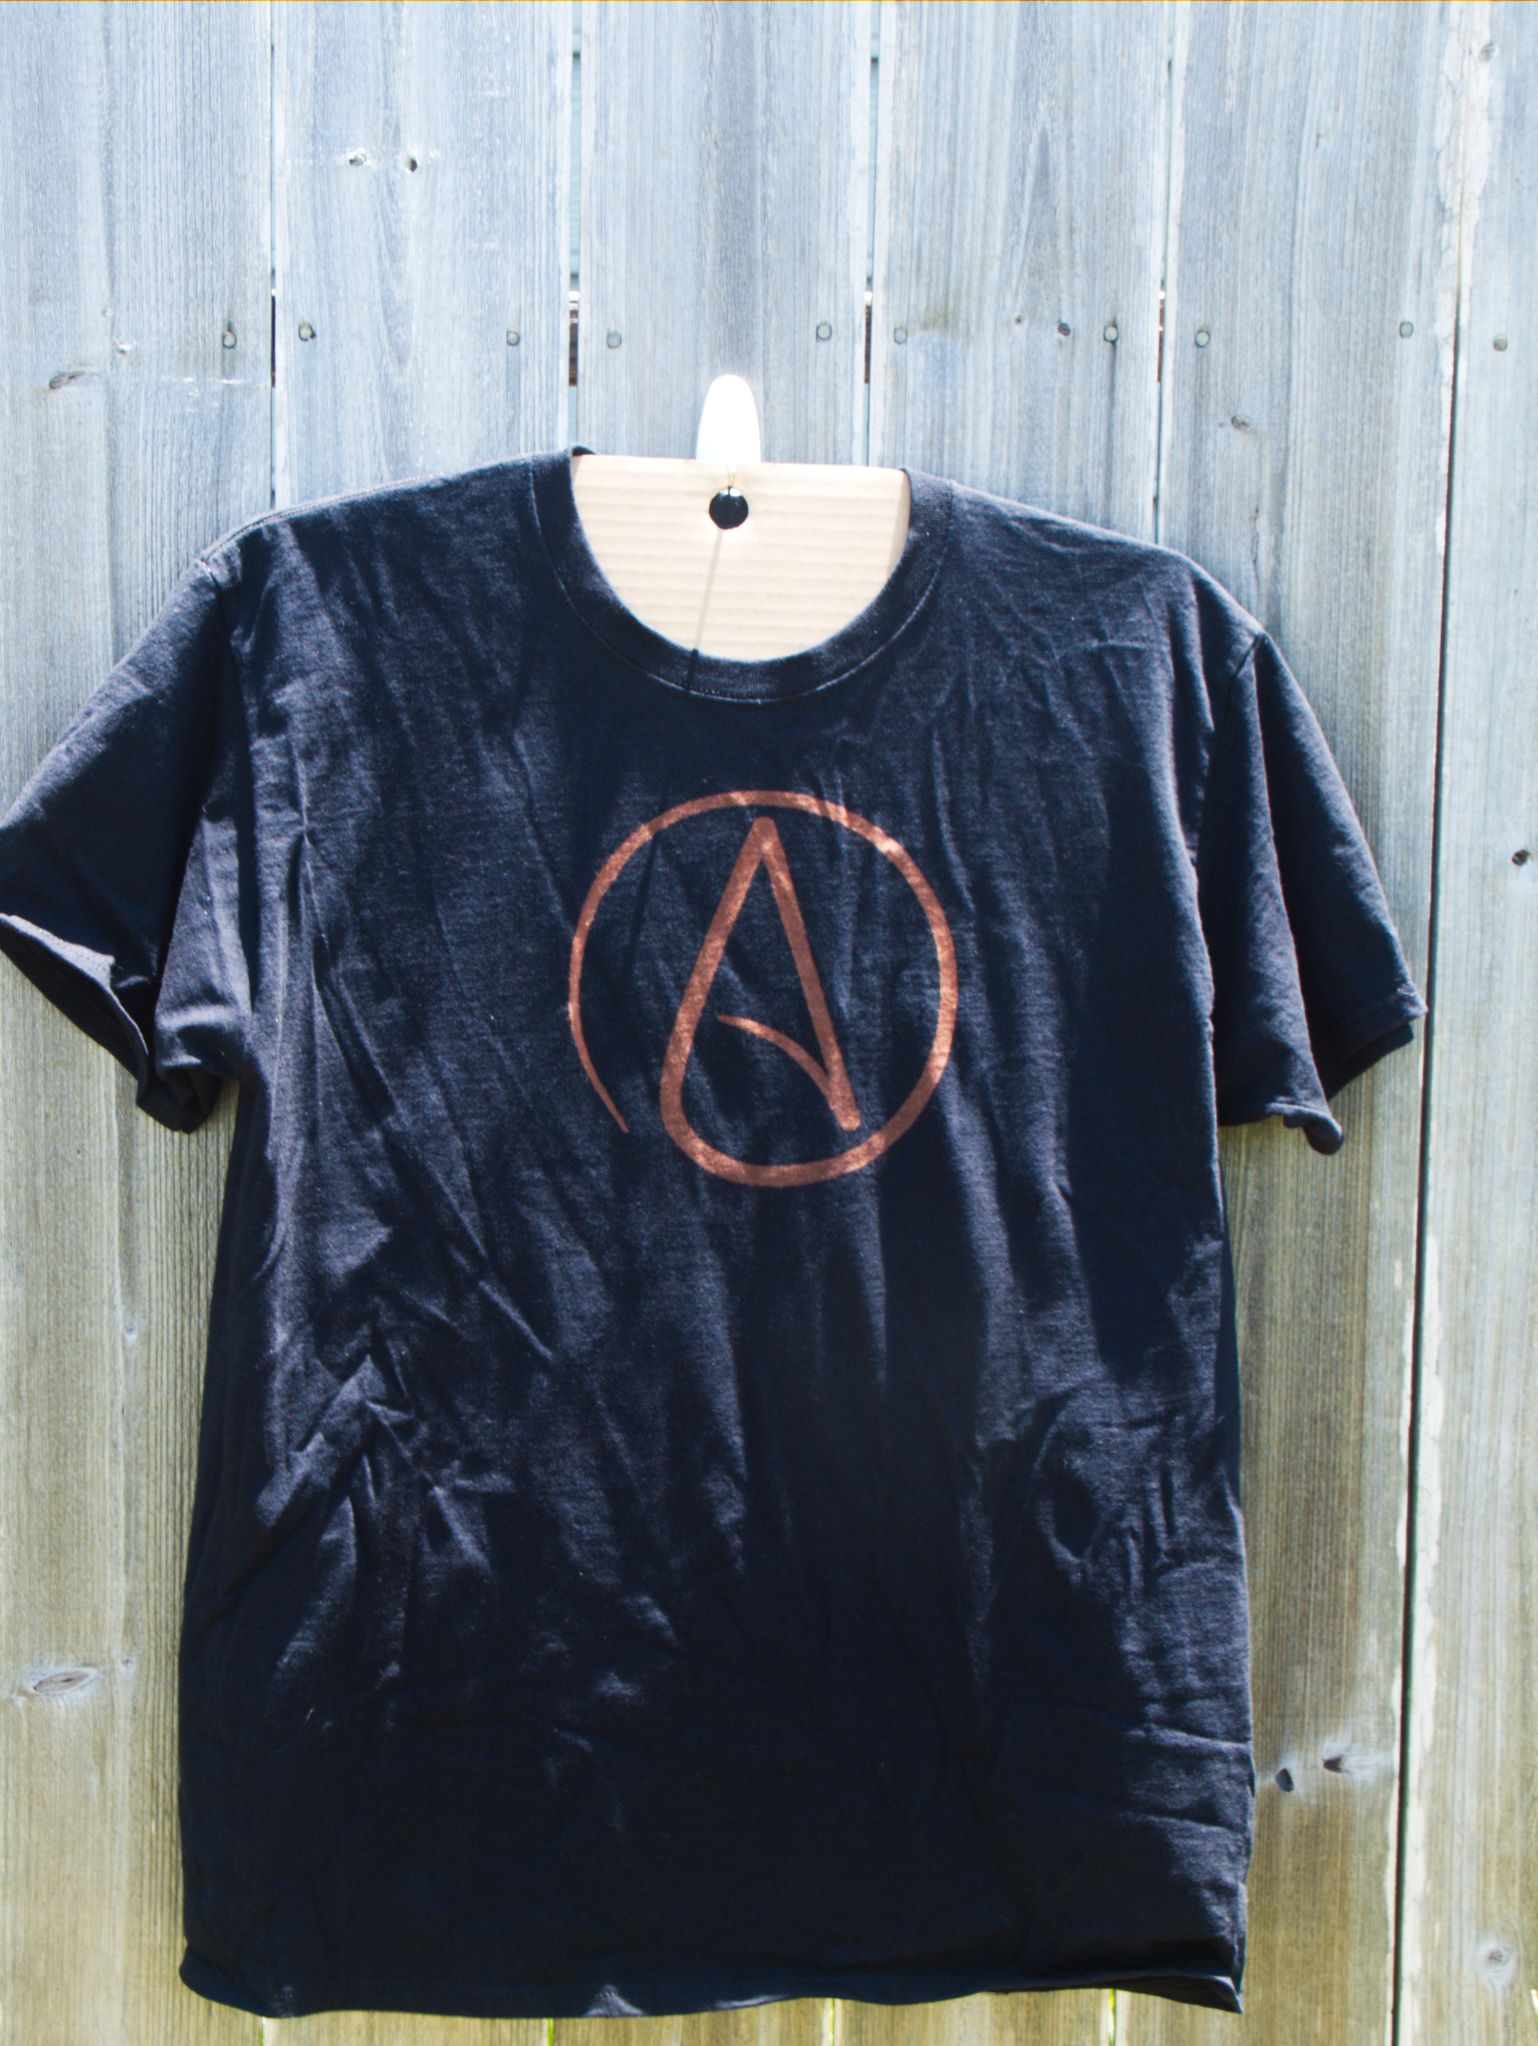 Atheist symbol discharge tee shirt example